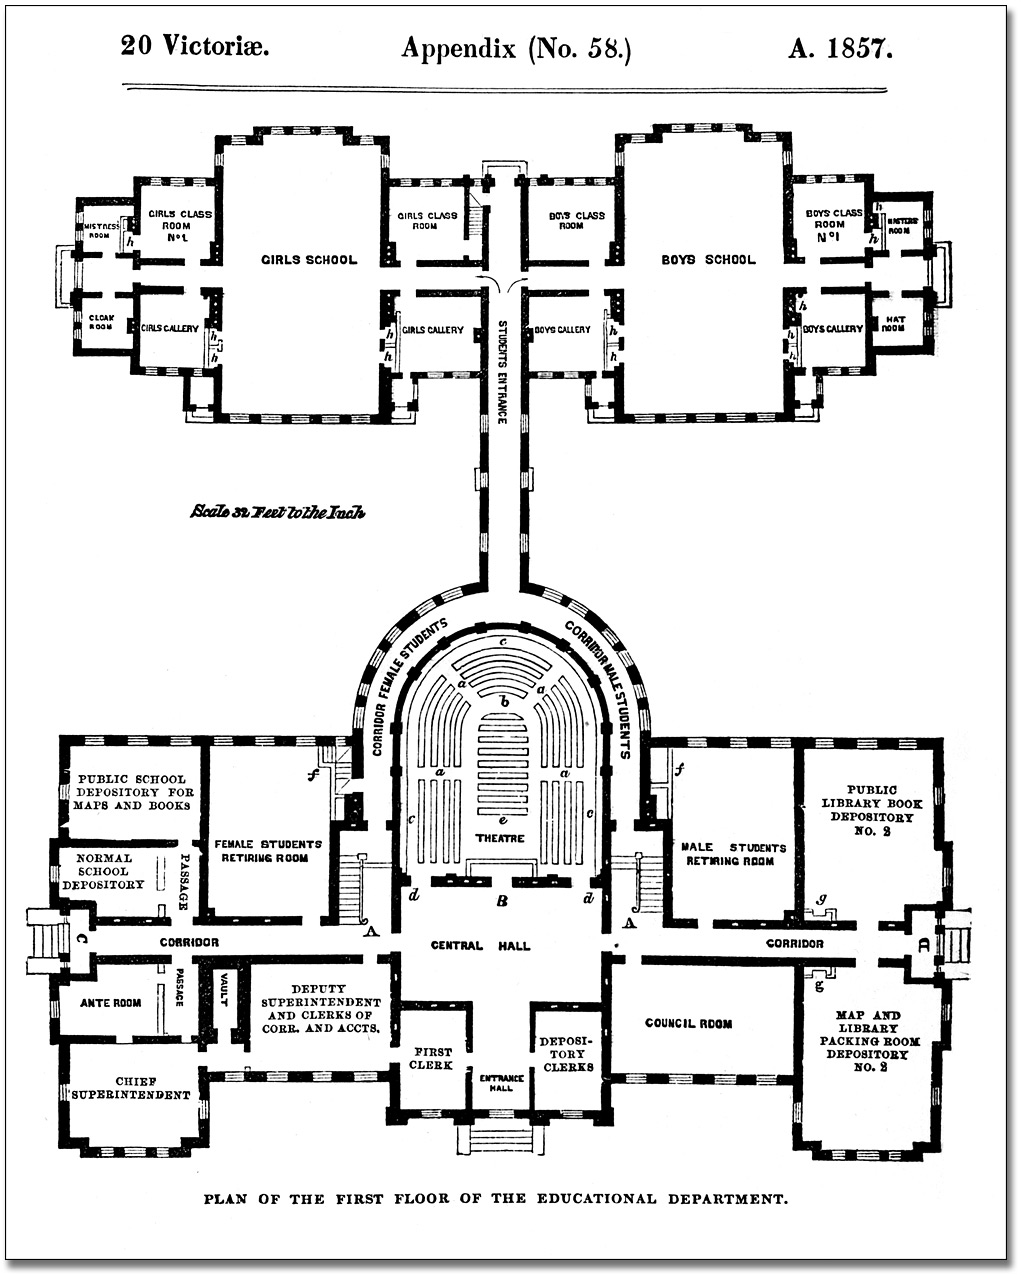 Filearchitectural Measured Drawings Showing The Floor Plans Of The